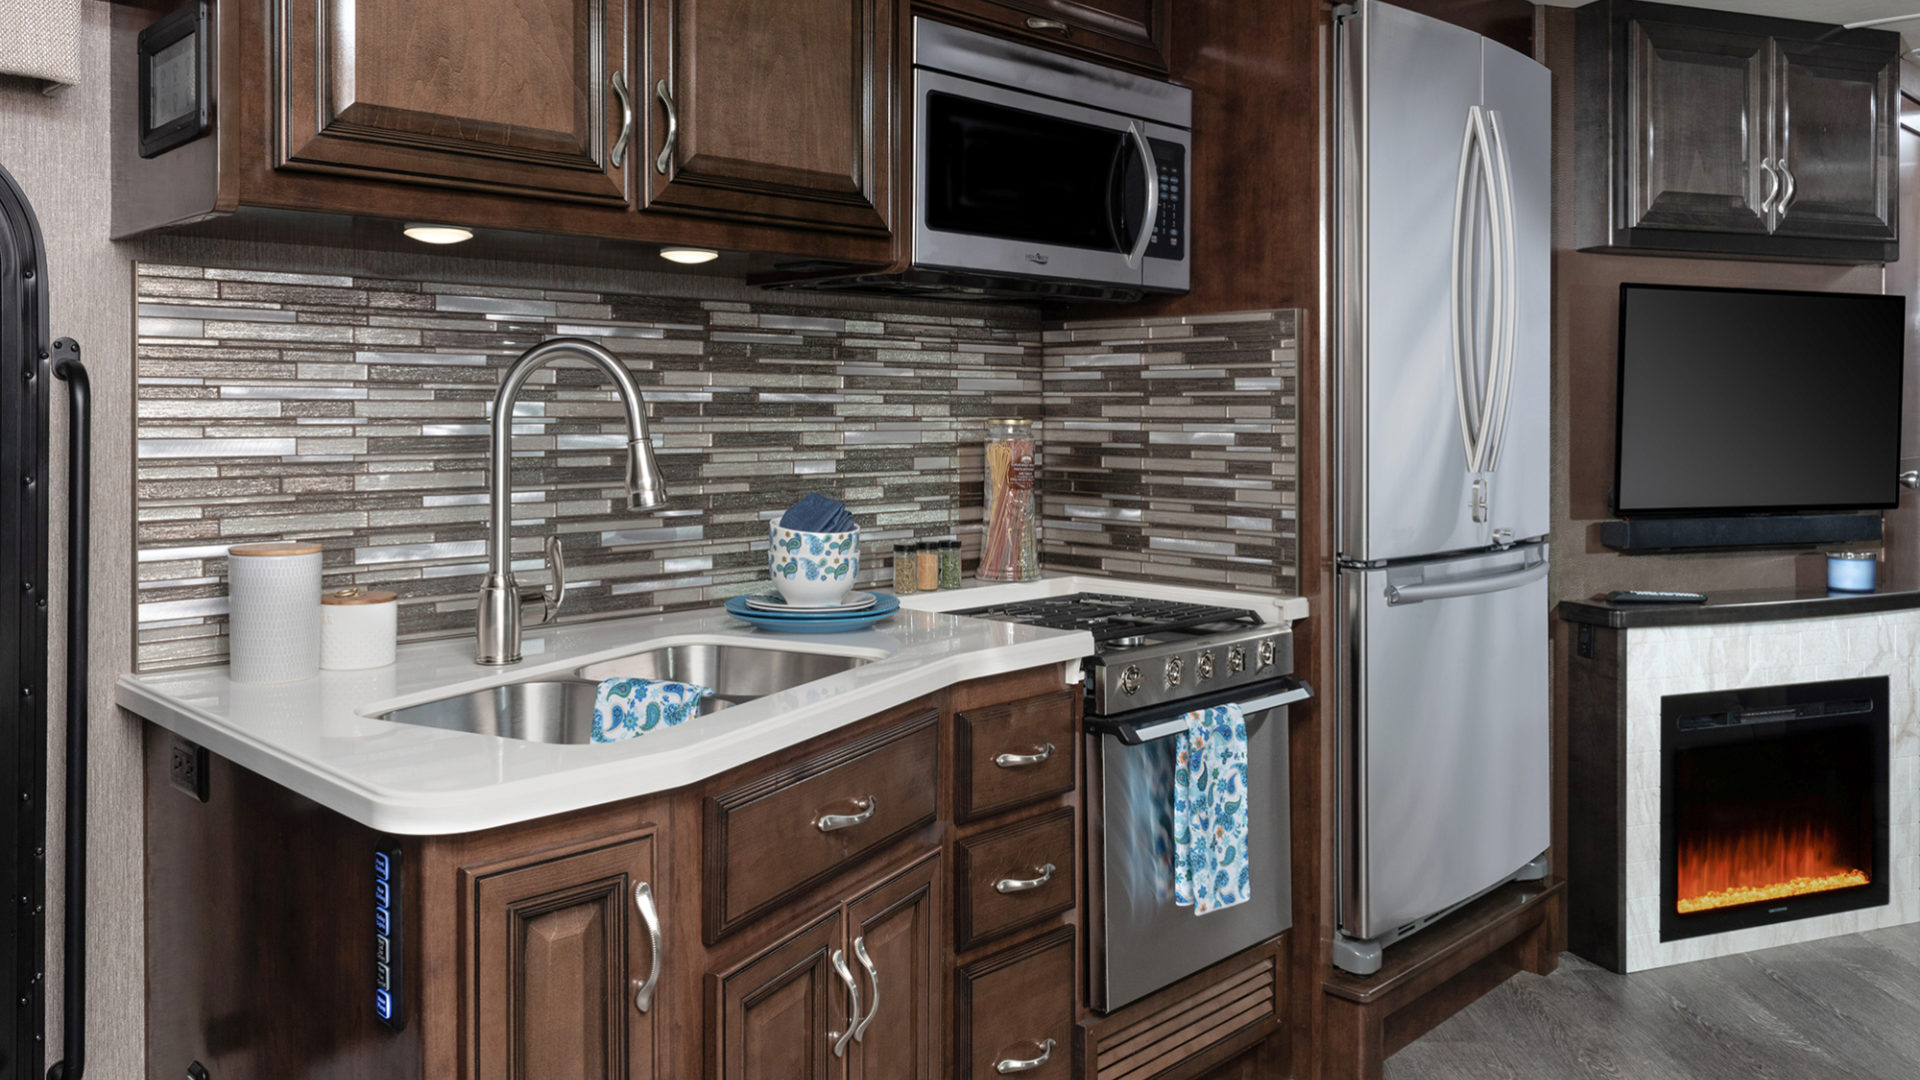 Bounder 35K Oceanview décor with Oxford cabinetry